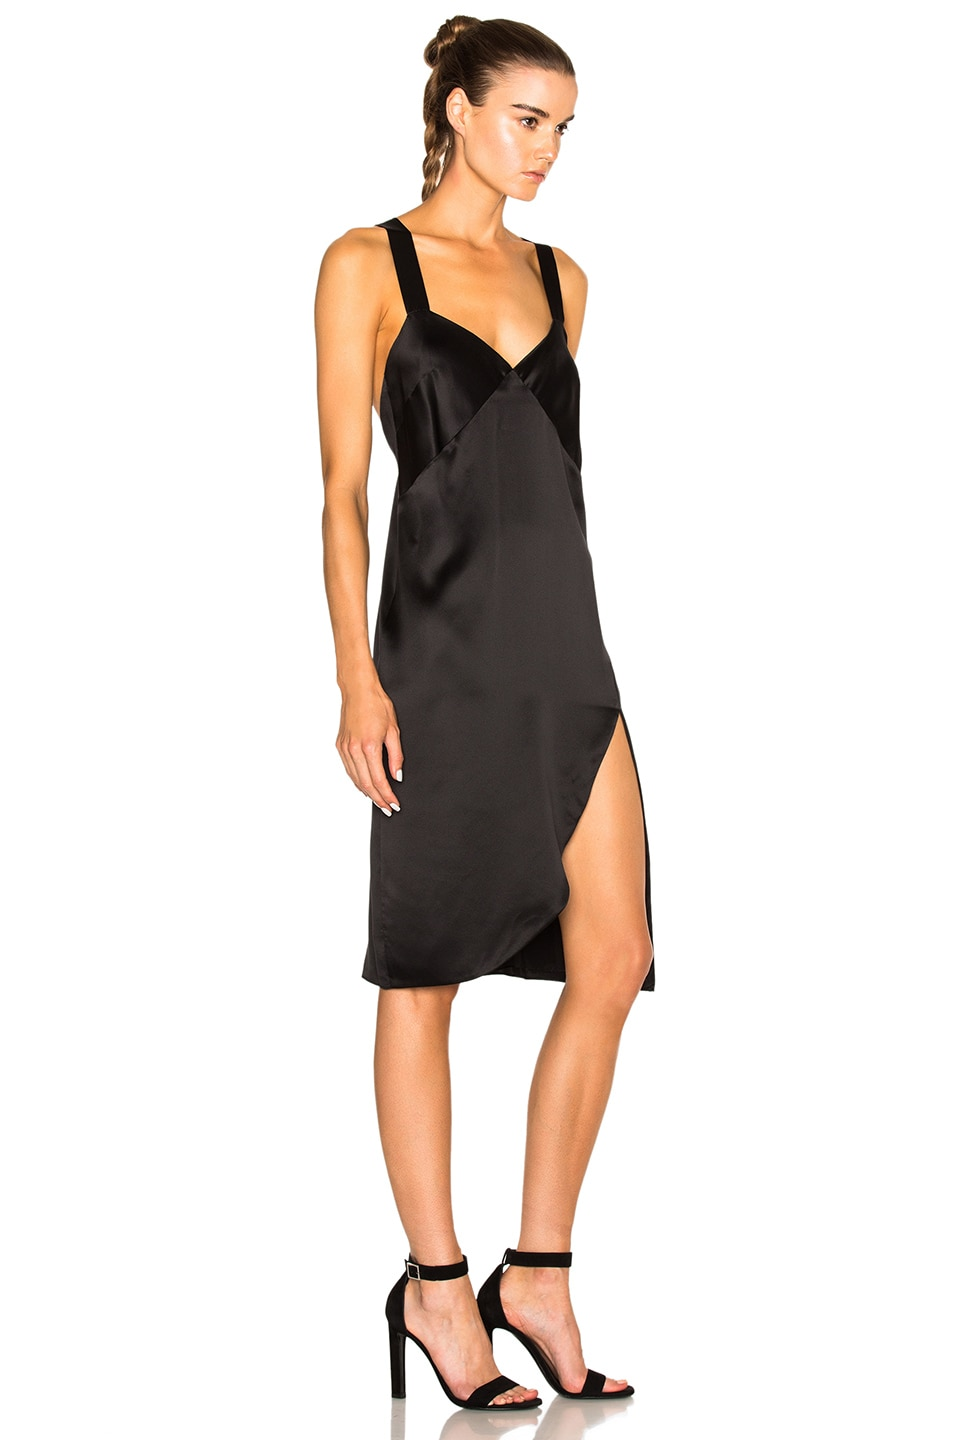 fce0ffbf4e23 Image 3 of Michelle Mason Cross Back Slip Dress in Black